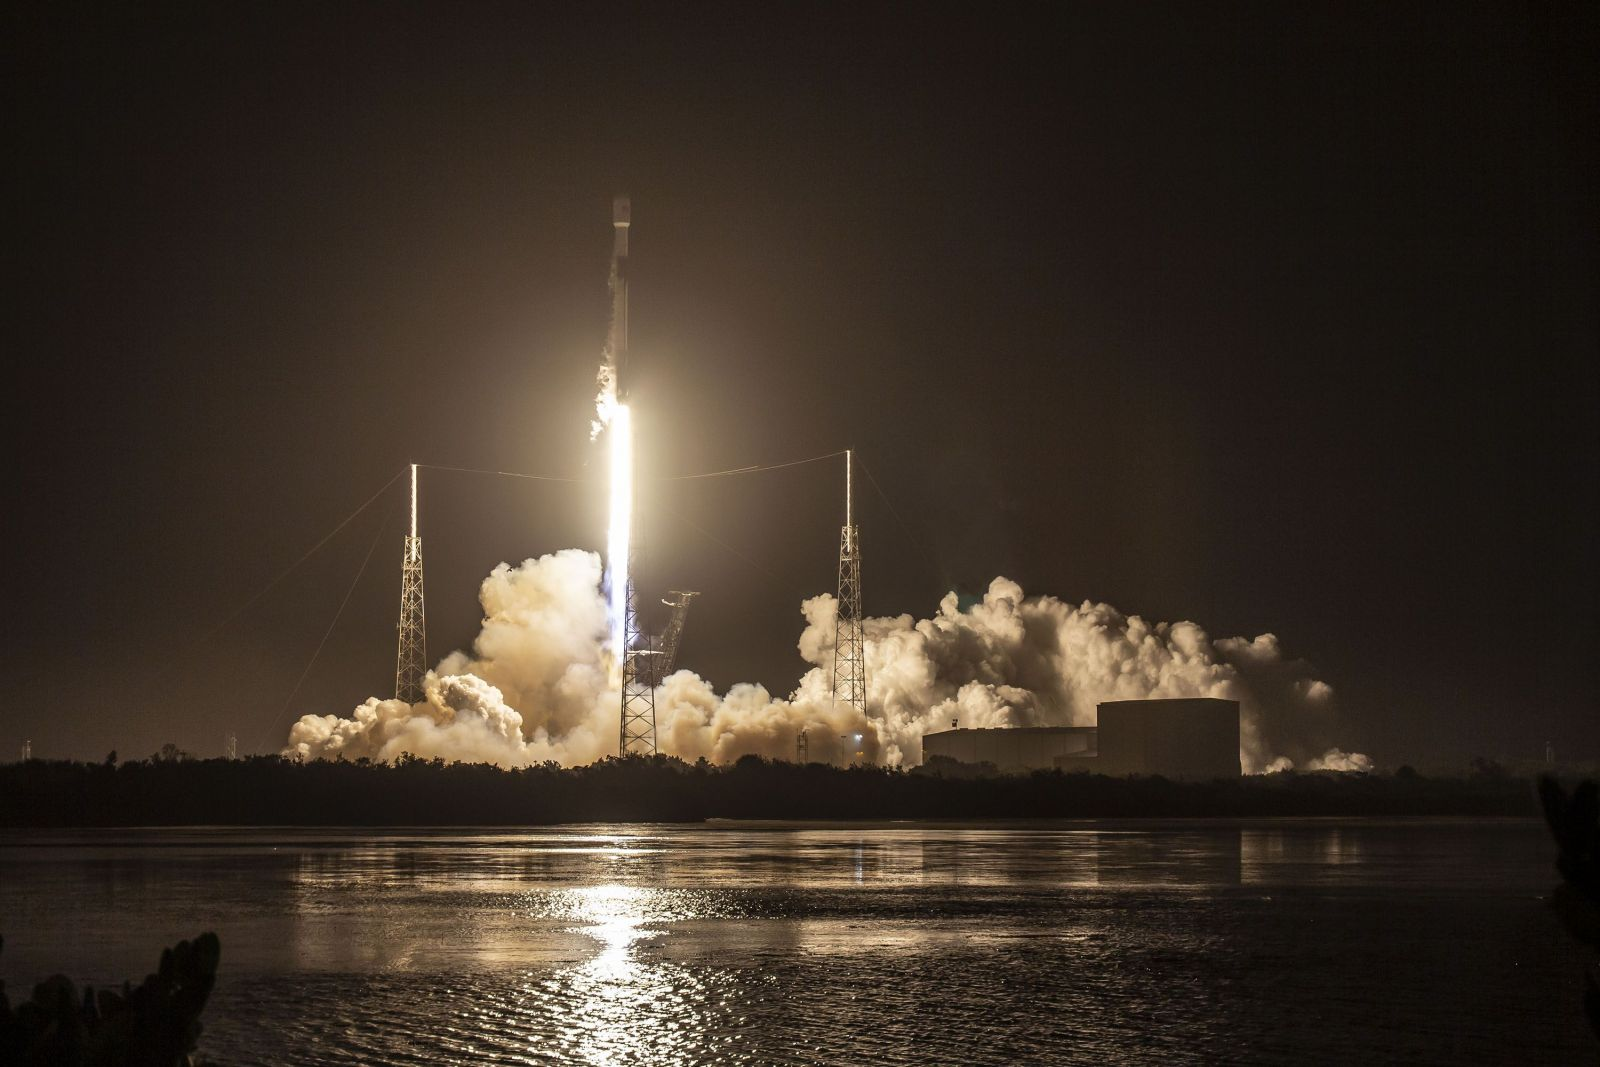 A SpaceX Falcon 9 rocket with the JCSAT-18 / Kacific-1 satellite launches from Cape Canaveral Air Force Station's Space Launch Complex 40 in Florida on 7.10 p.m. EST (00:10 UTC on Dec. 17 ) on Dec. 16, 2019. Photo Credit: SpaceX